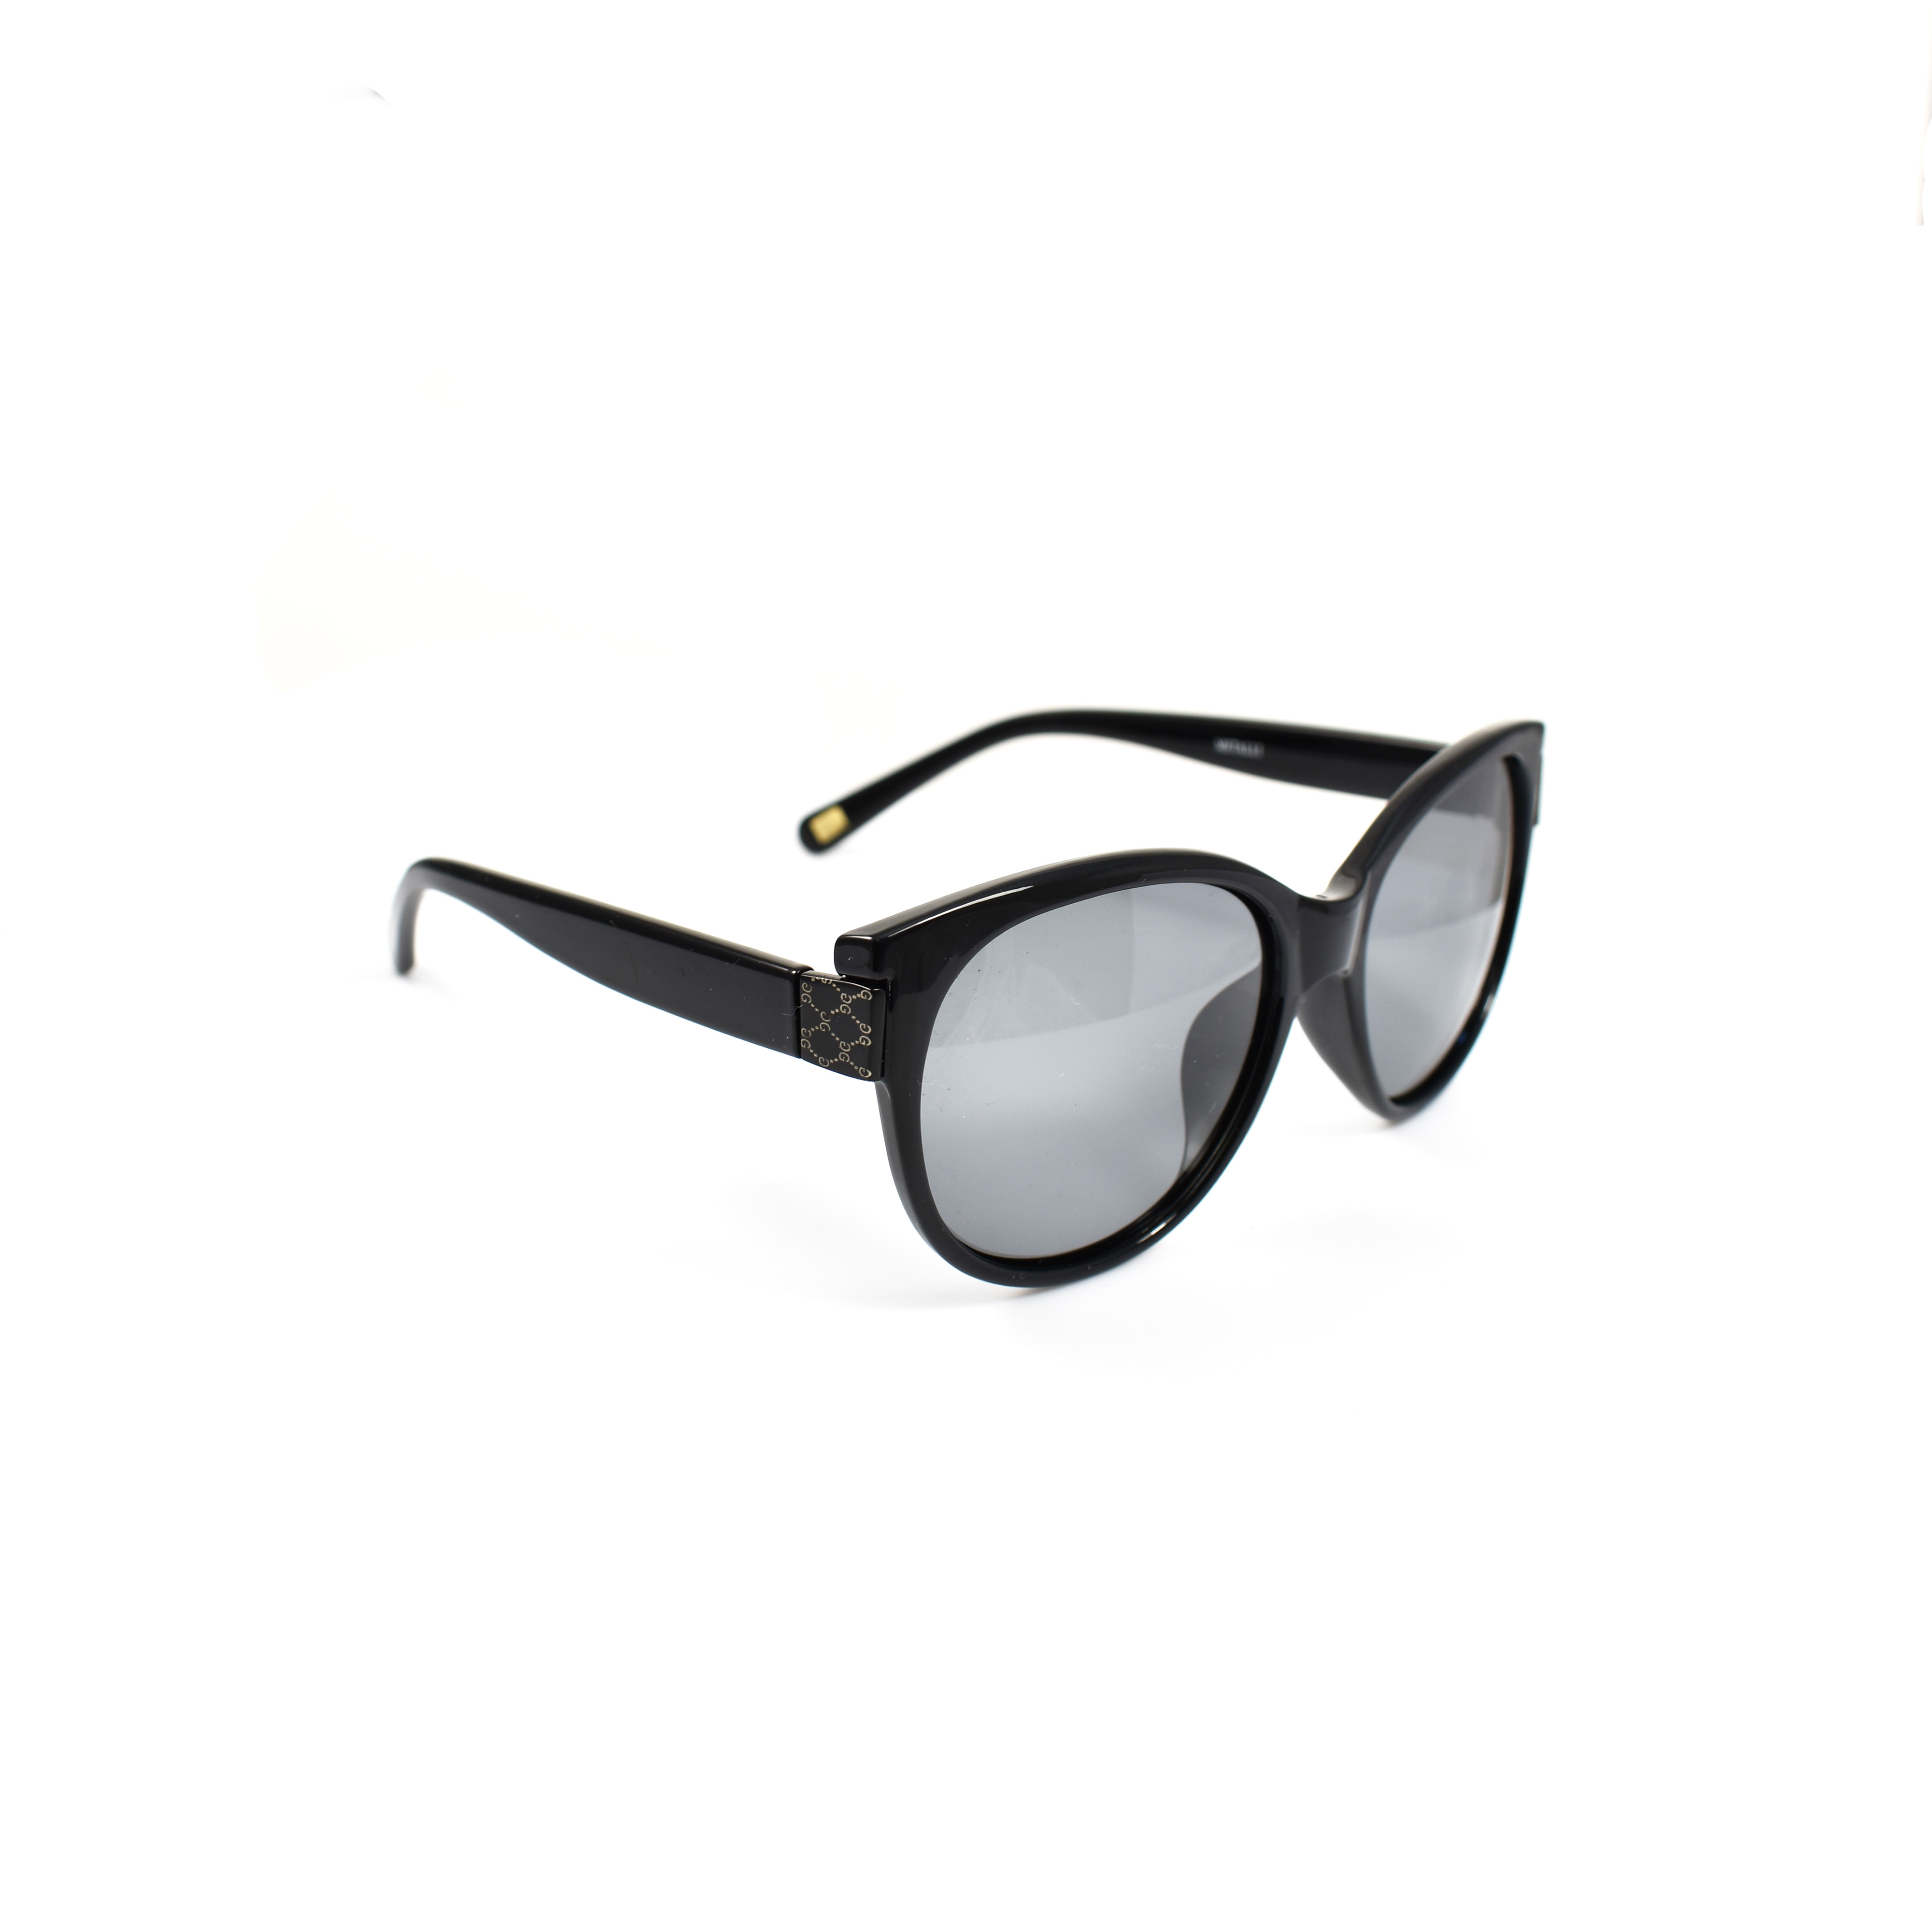 Haley Black Ladies Polarized Cateye